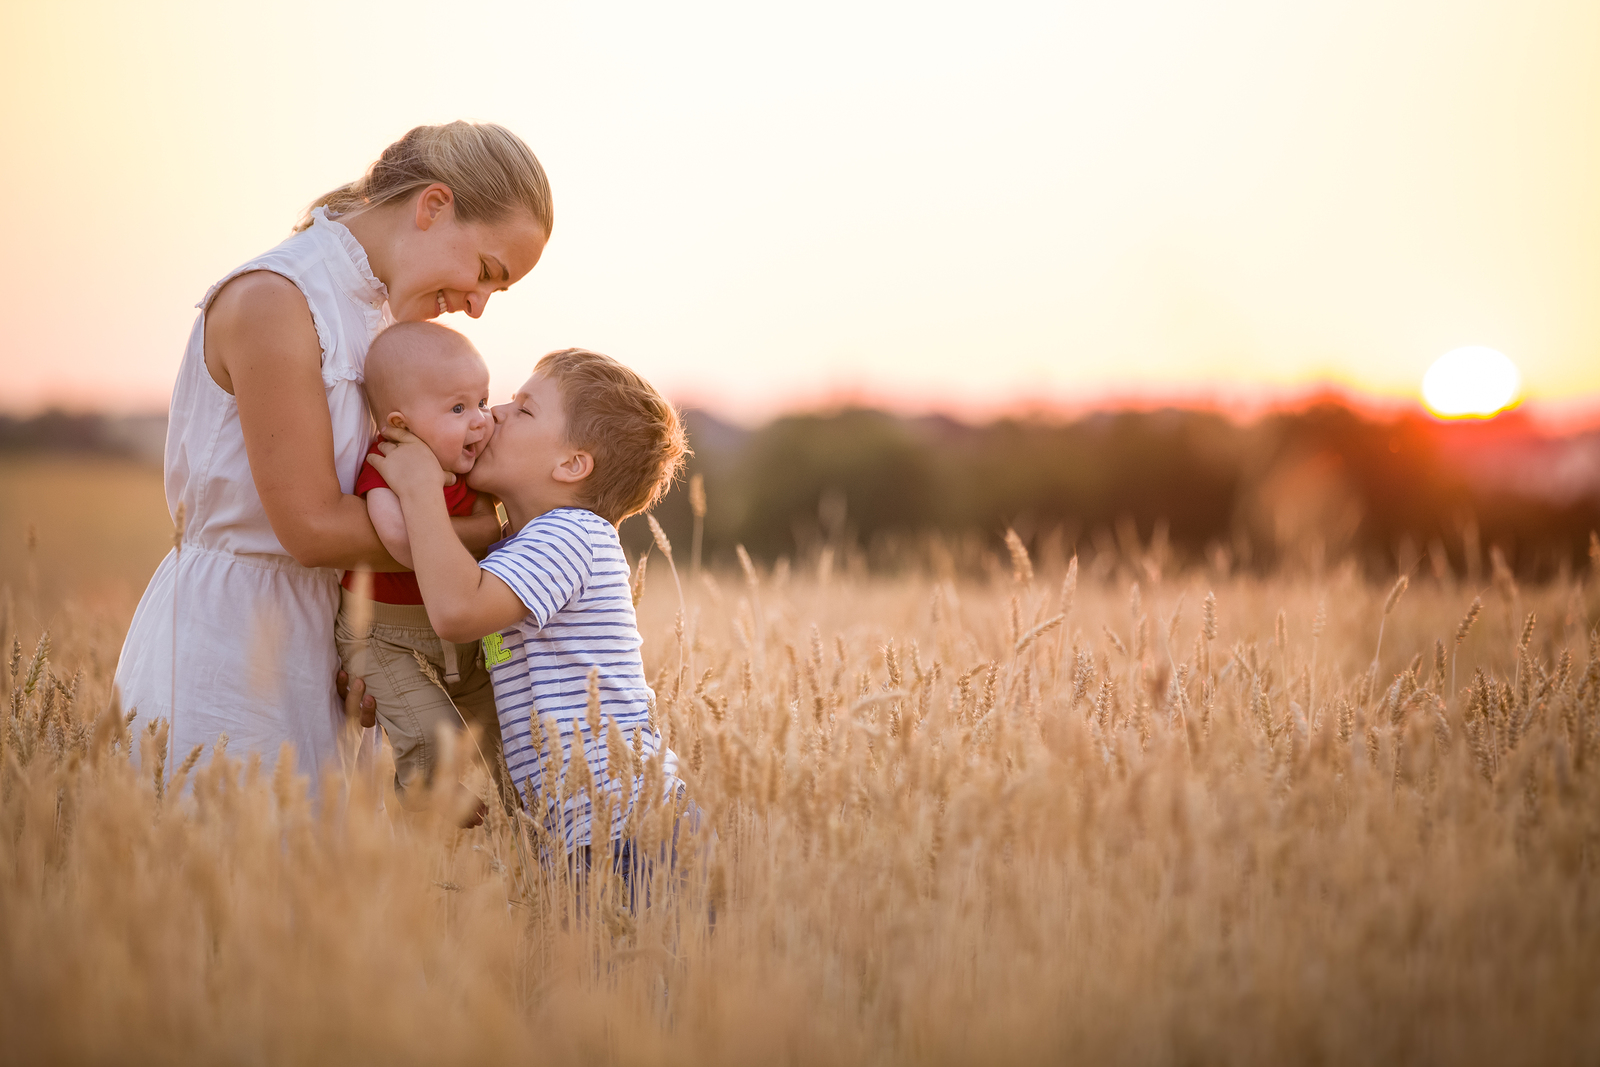 5 Mindful Tips to Strengthen Your Family